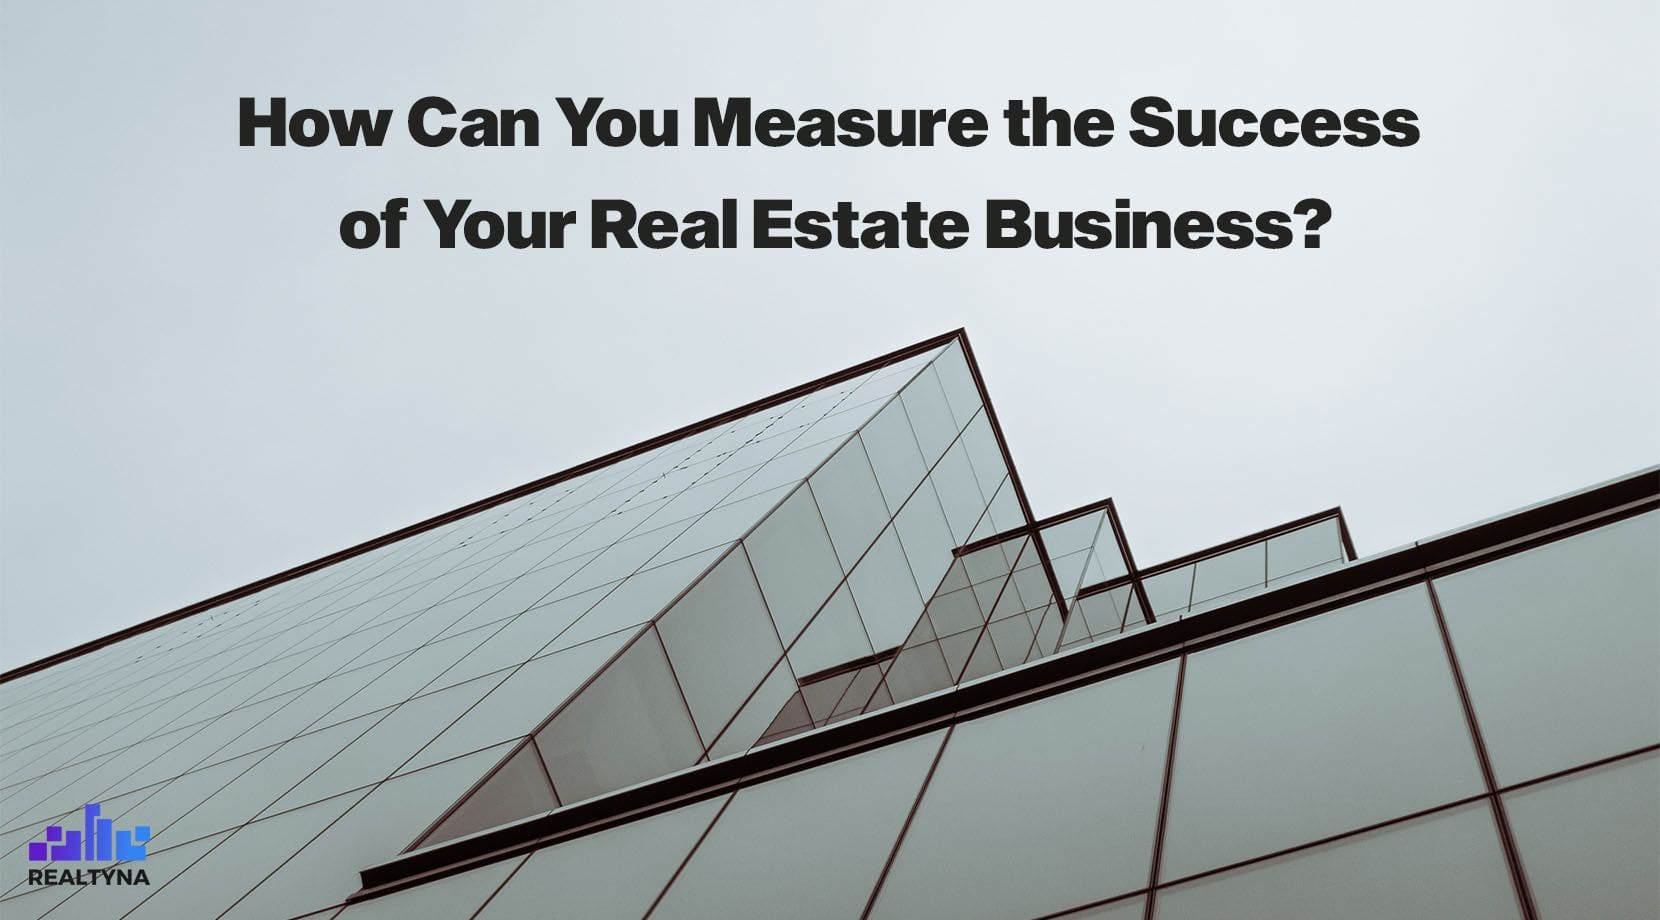 How Can You Measure the Success of Your Real Estate Business?